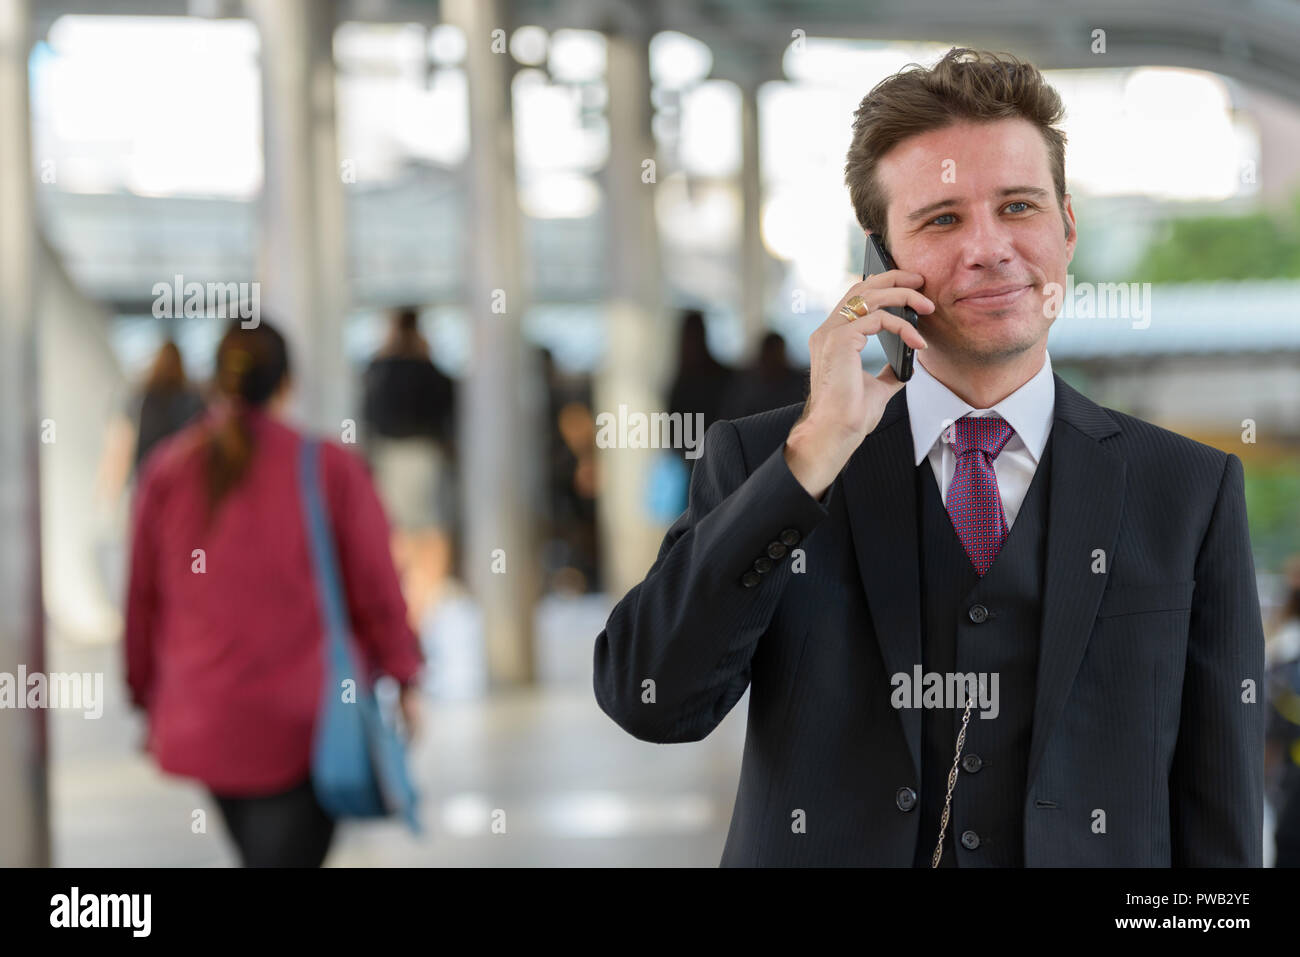 Businessman talking on mobile phone while thinking on train stat - Stock Image